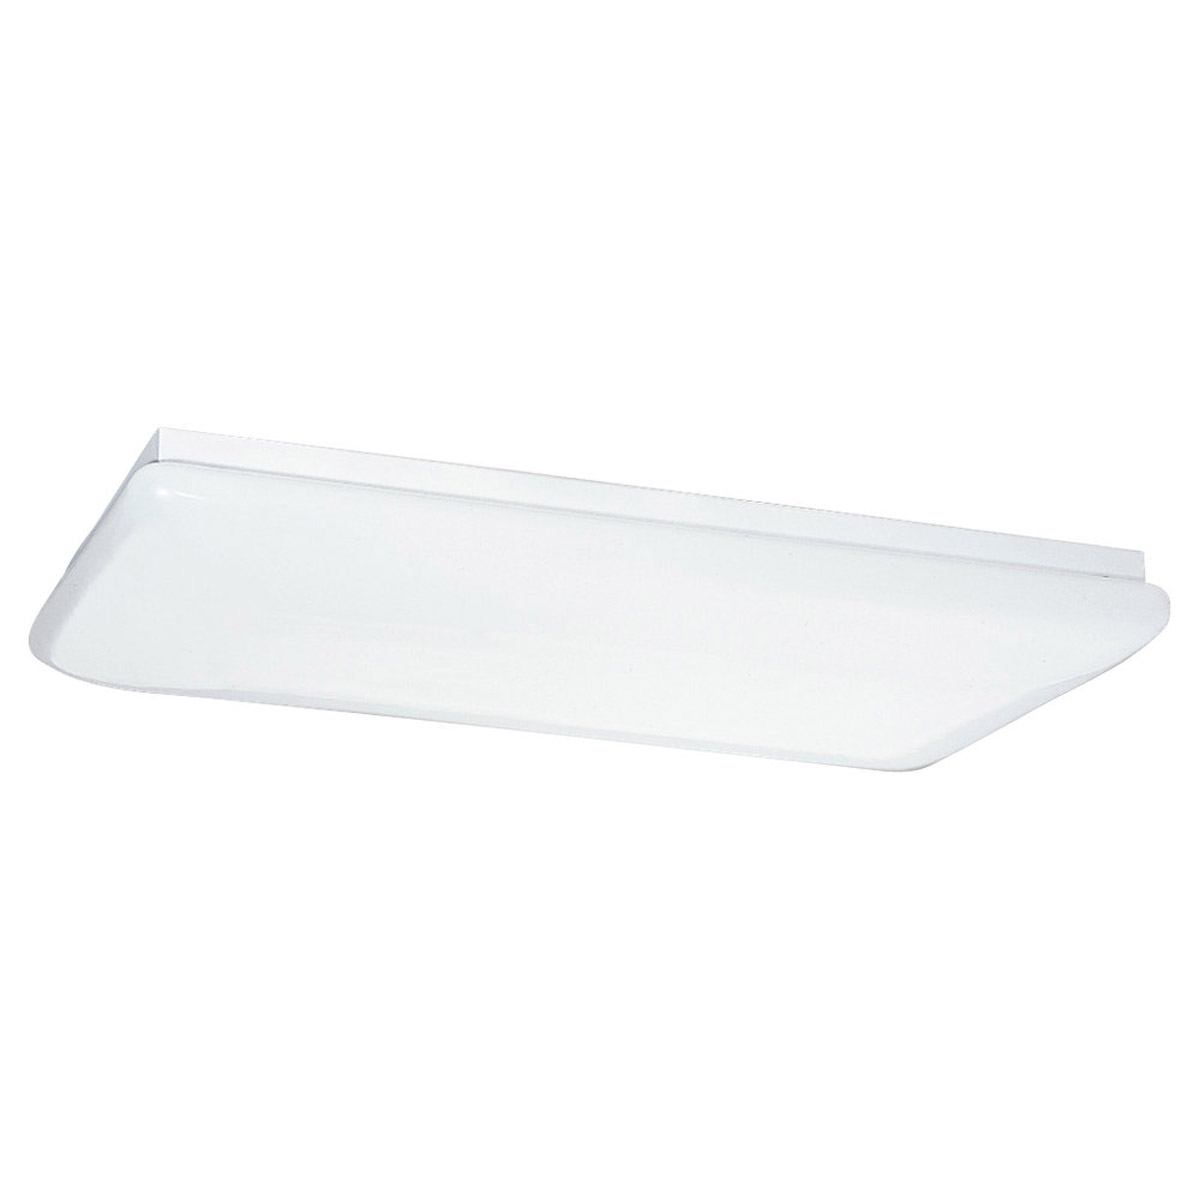 Sea Gull Lighting Signature 4 Light Fluorescent Flush Mount in White 59271LE-15